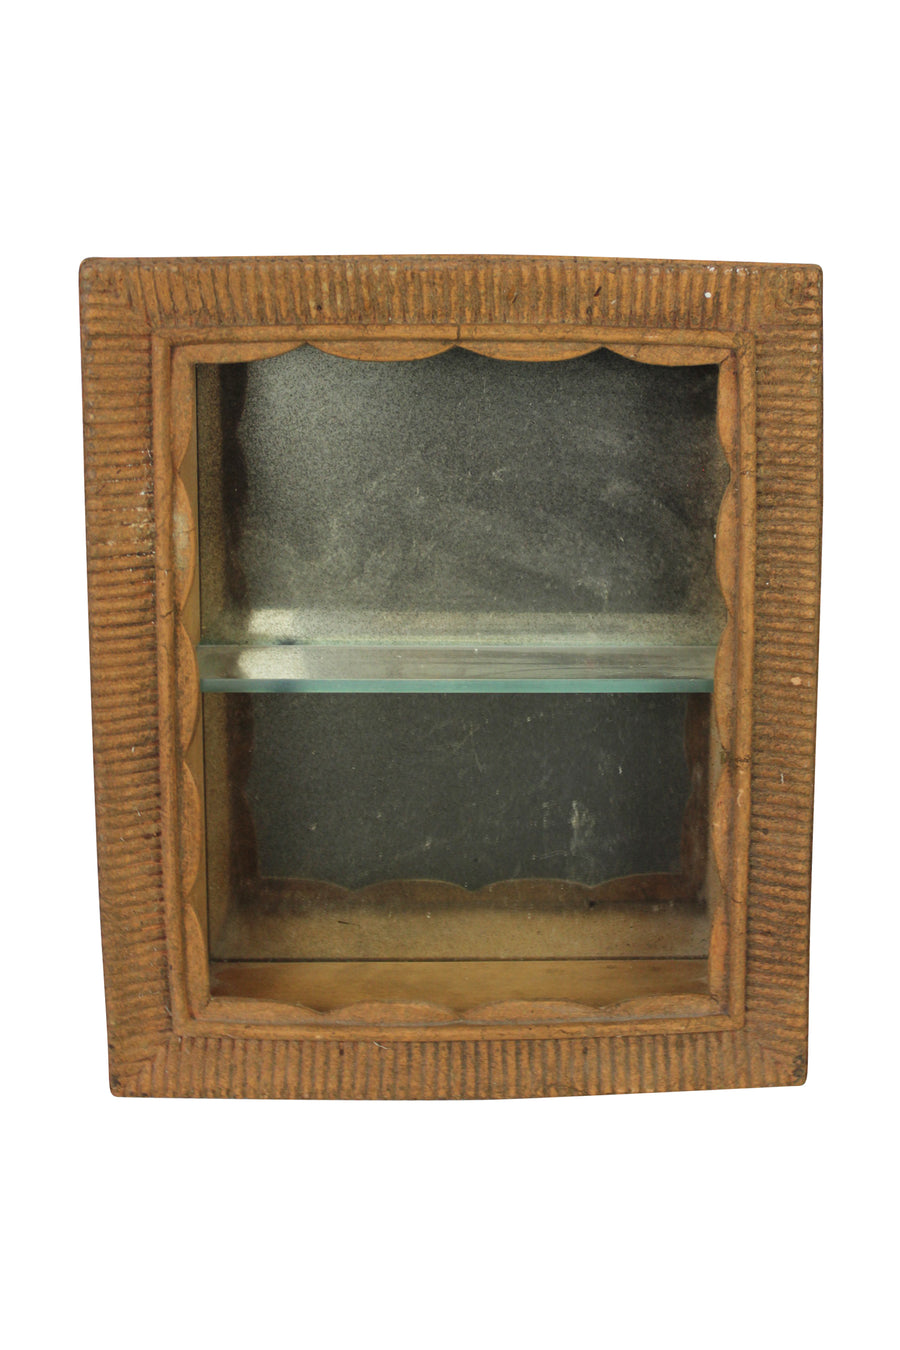 Rustic Mirrored Shelf